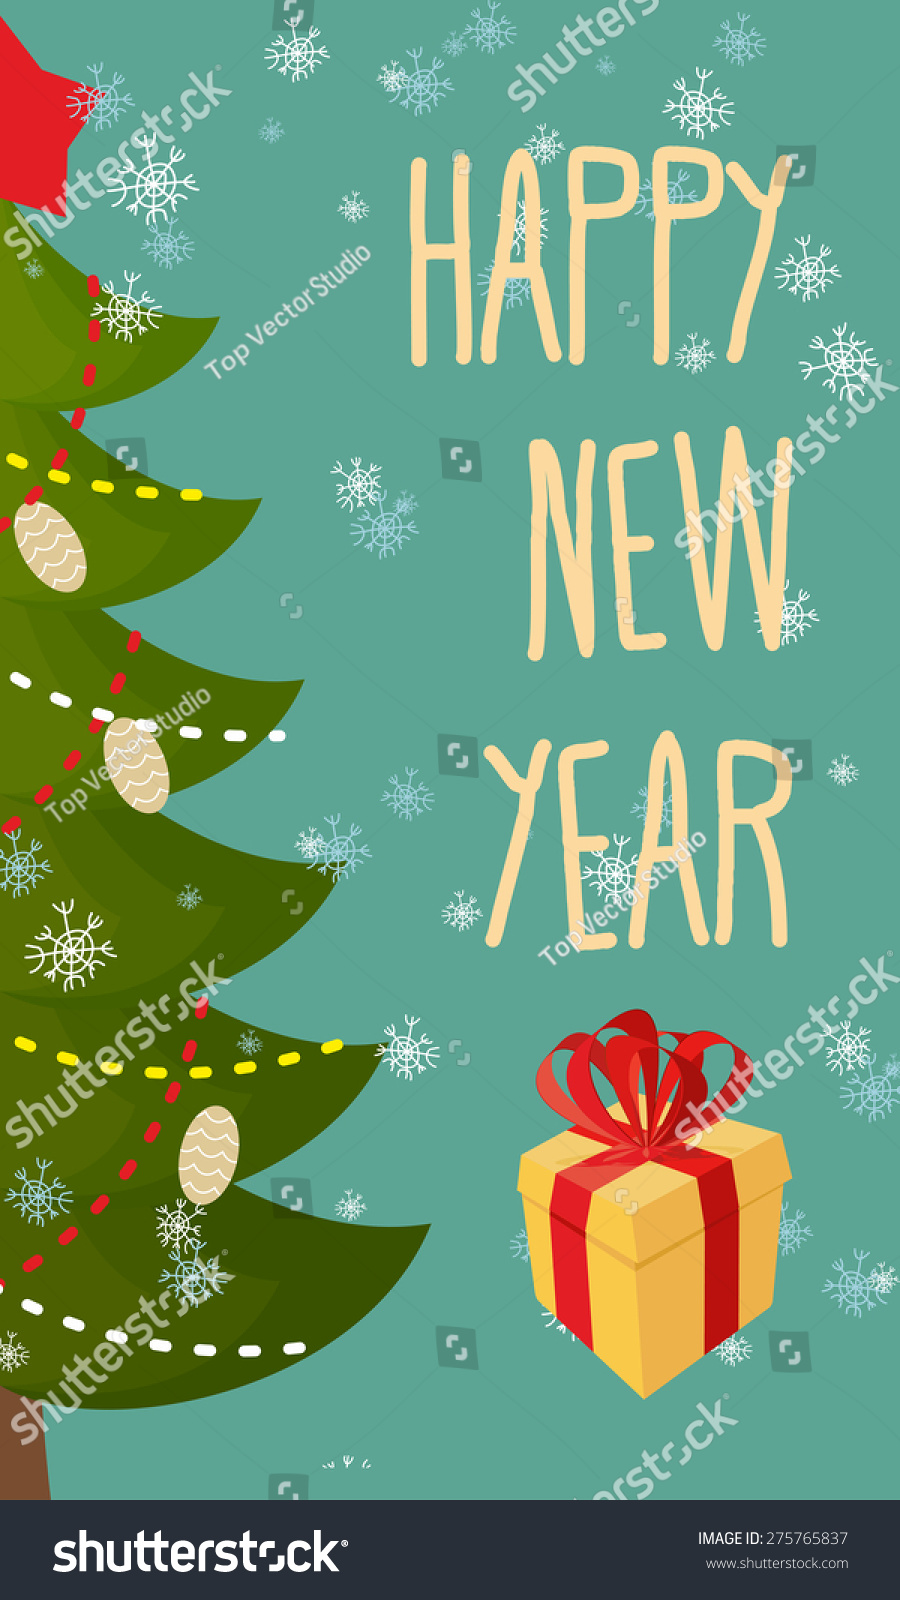 Royalty free stock illustration of happy new year greeting card happy new year greeting card christmas tree and gift m4hsunfo